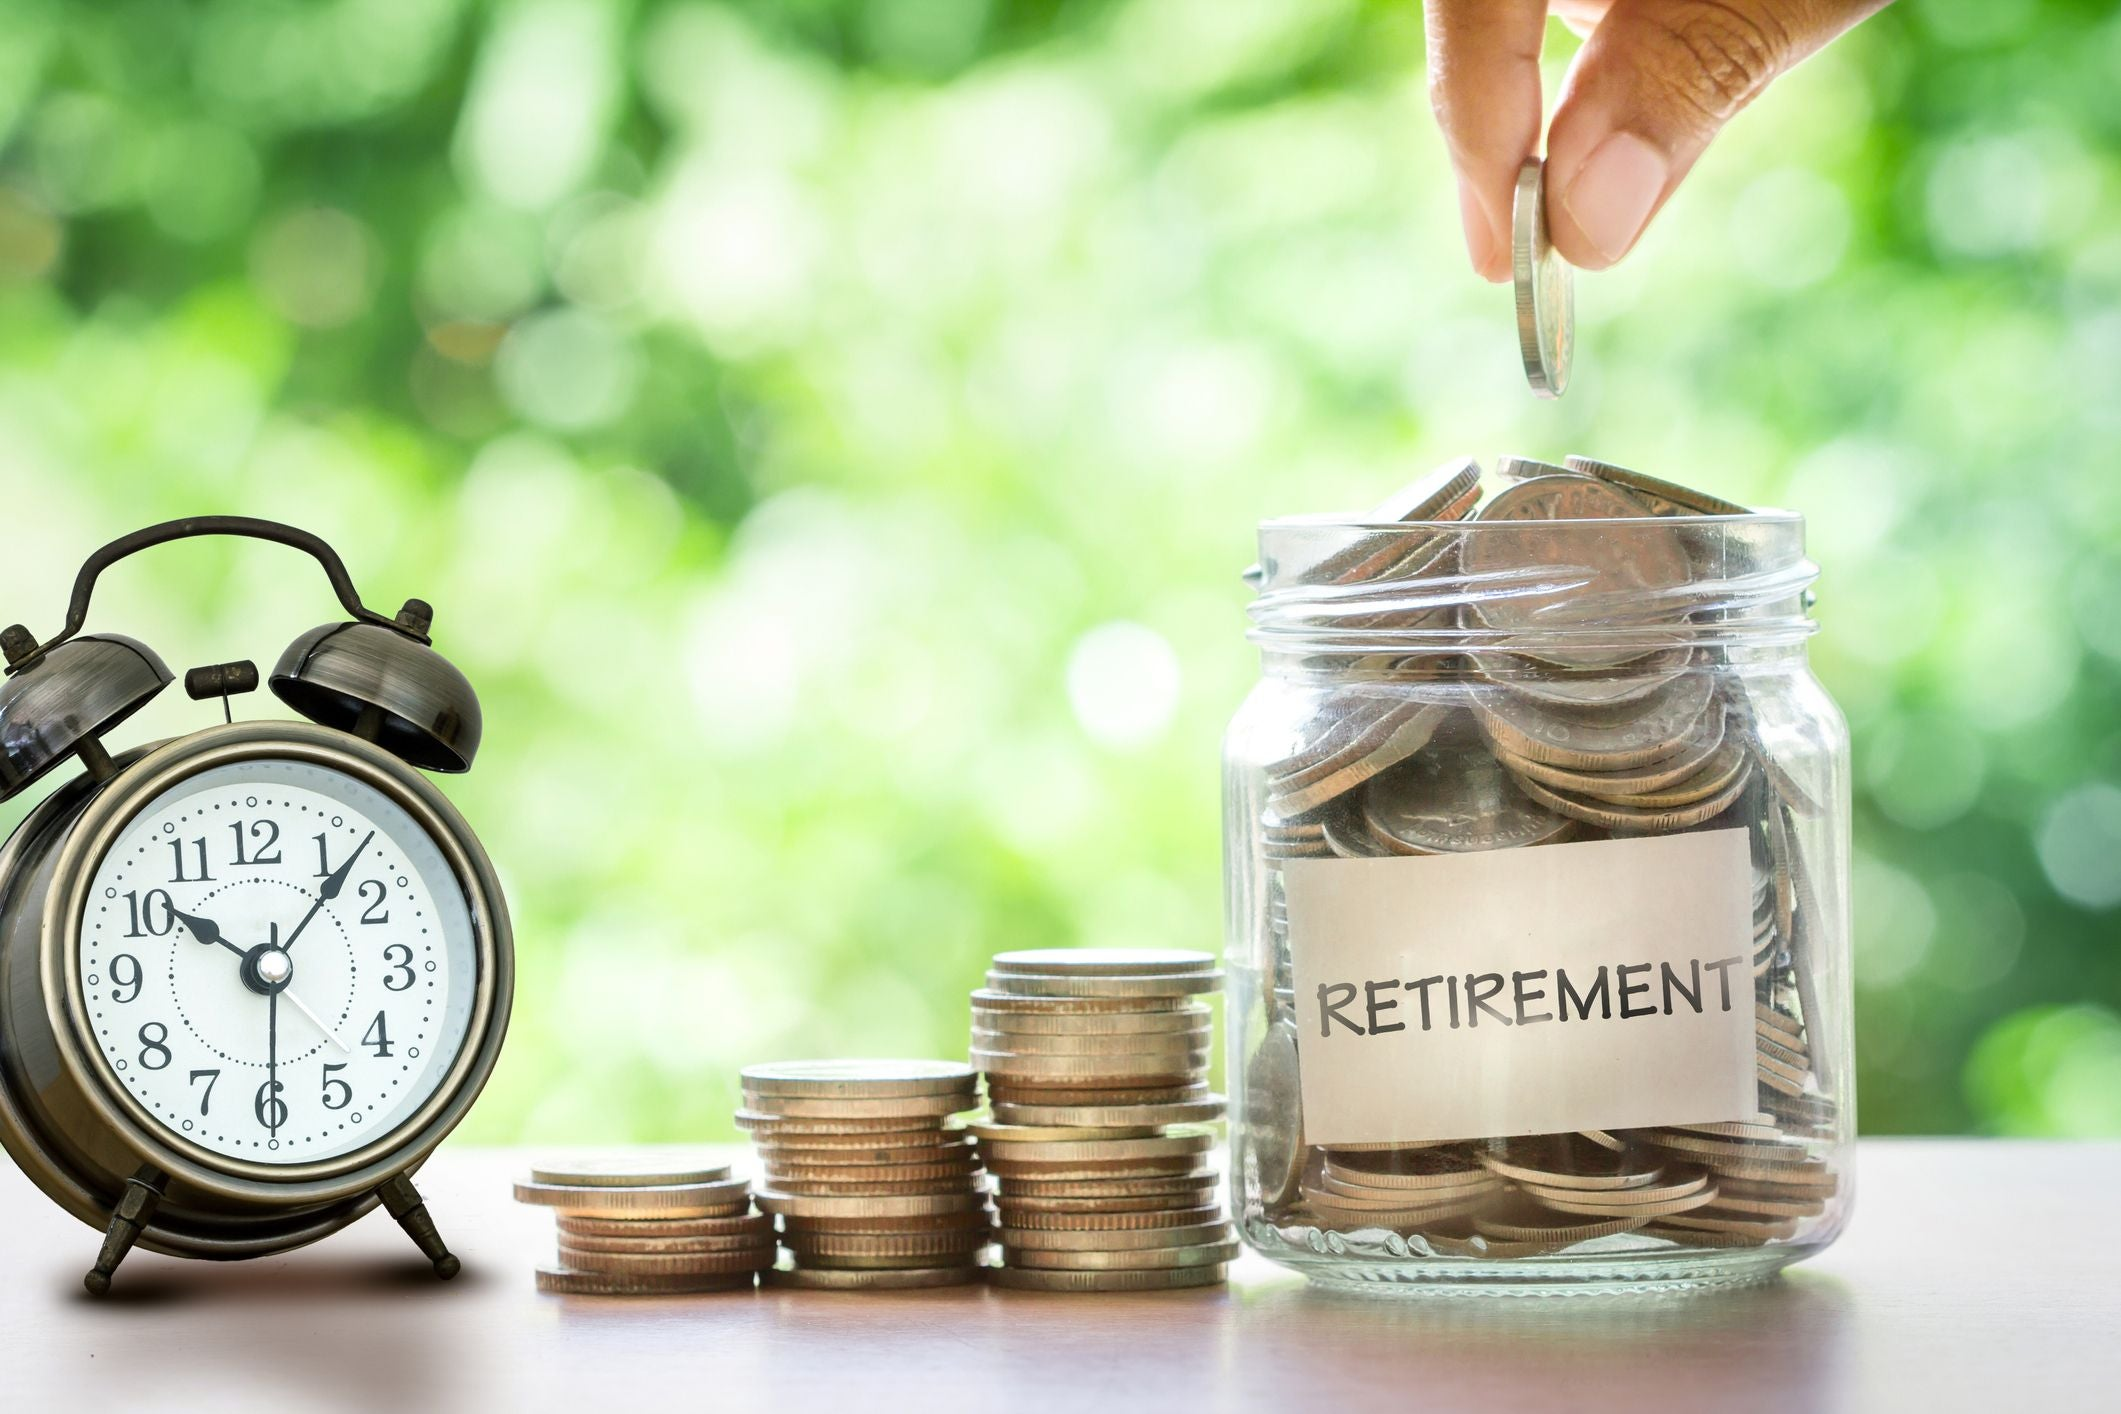 3 Things You Can Do Right Now to Prepare for Retirement | The Motley Fool